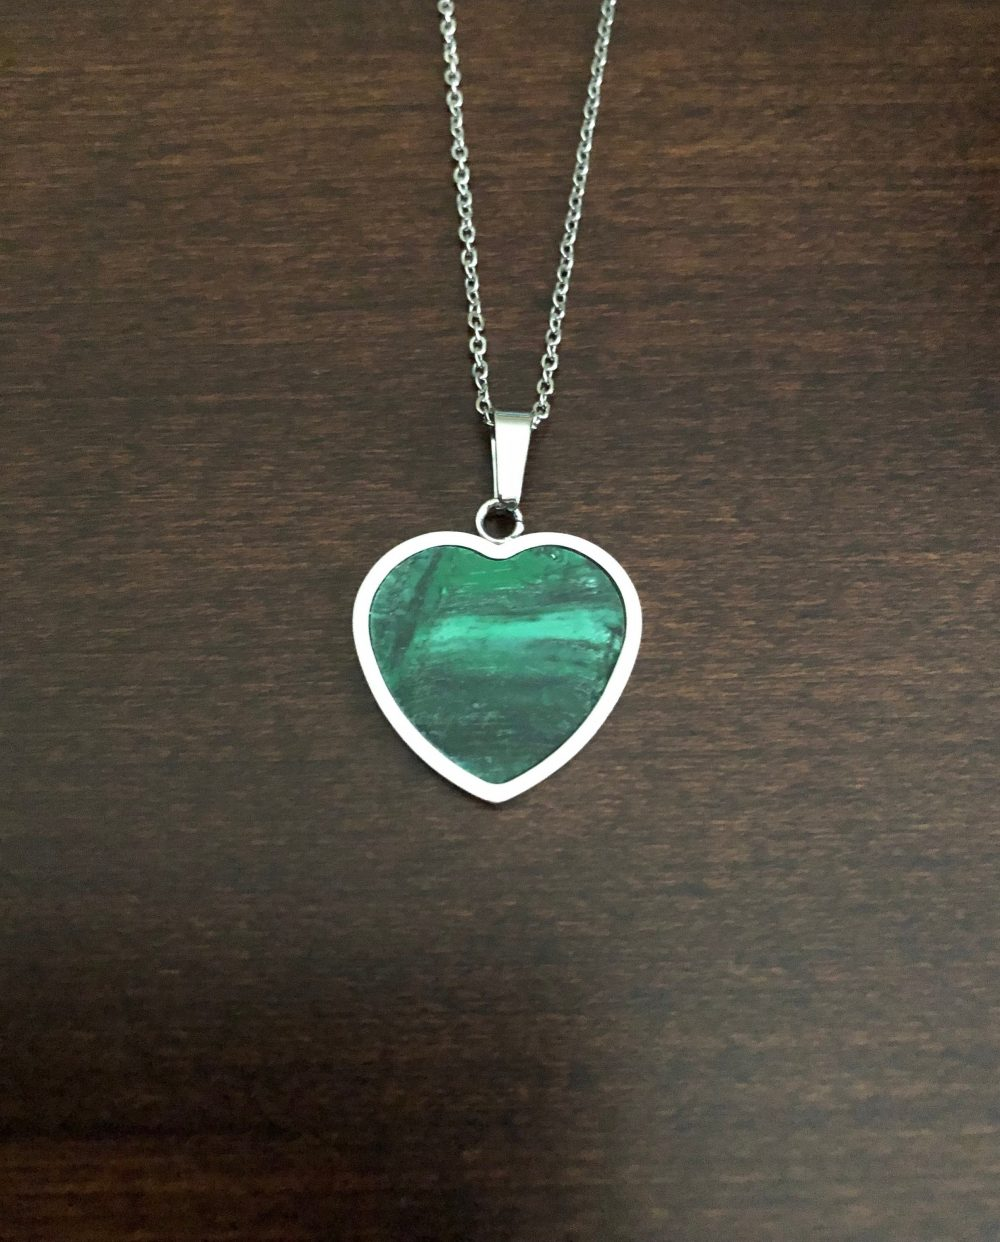 Heart Necklace, Green Heart, Jewelry, Pendant Pendant, Gifts, Gifts For Her